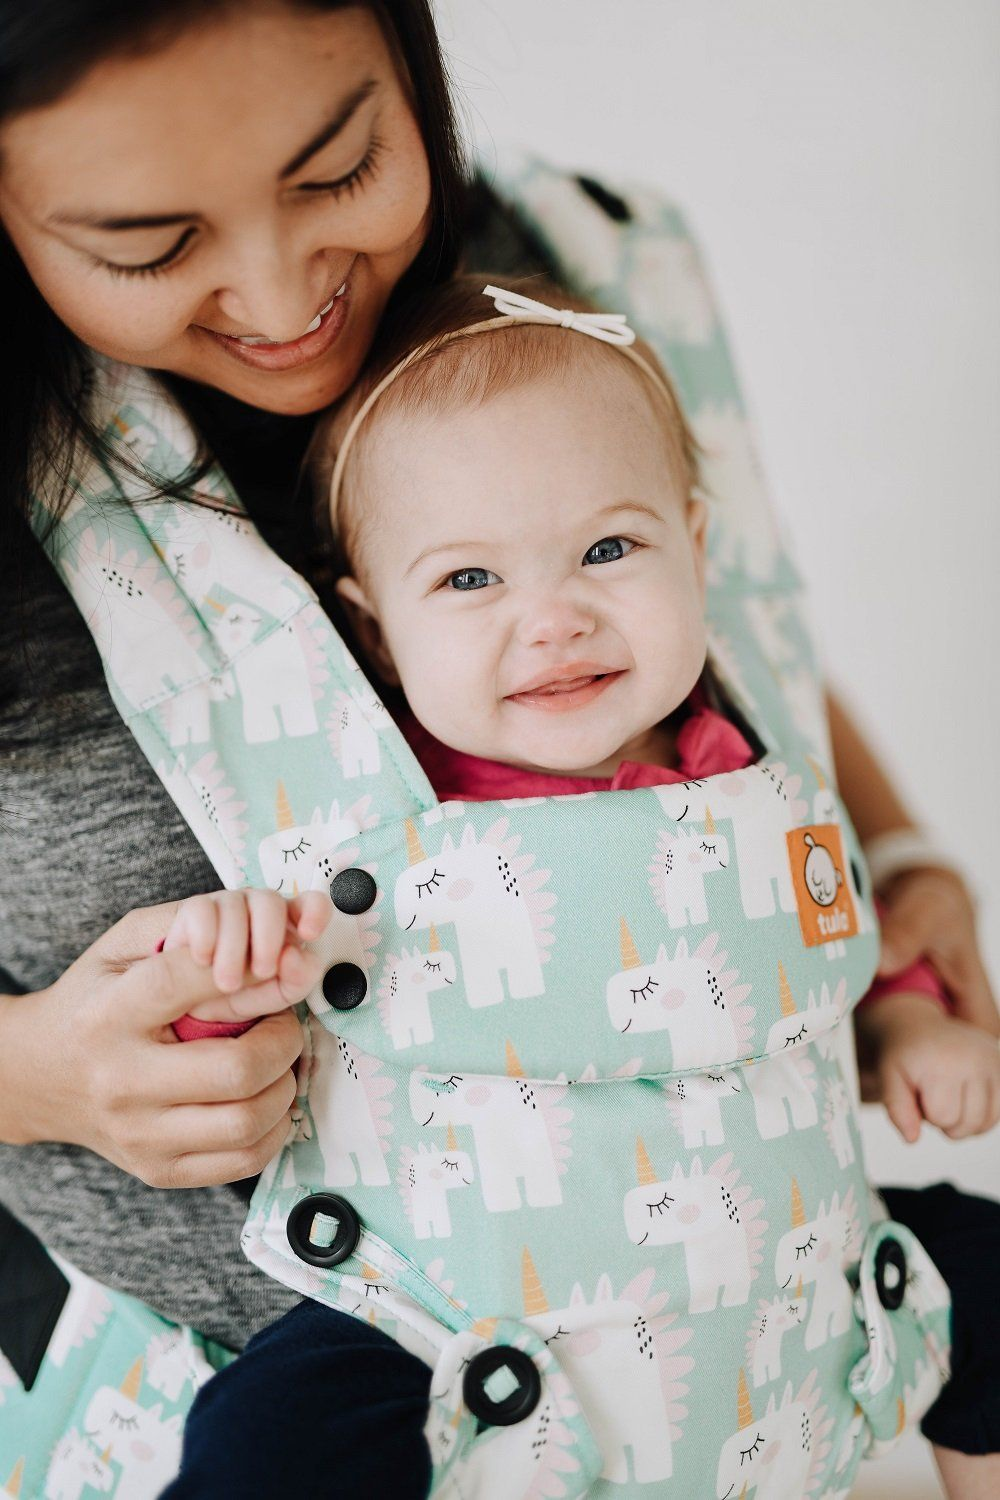 529df8e834a Unisaurus - Tula Explore Baby Carrier - Baby Tula. Meet sweet little  buddies from a